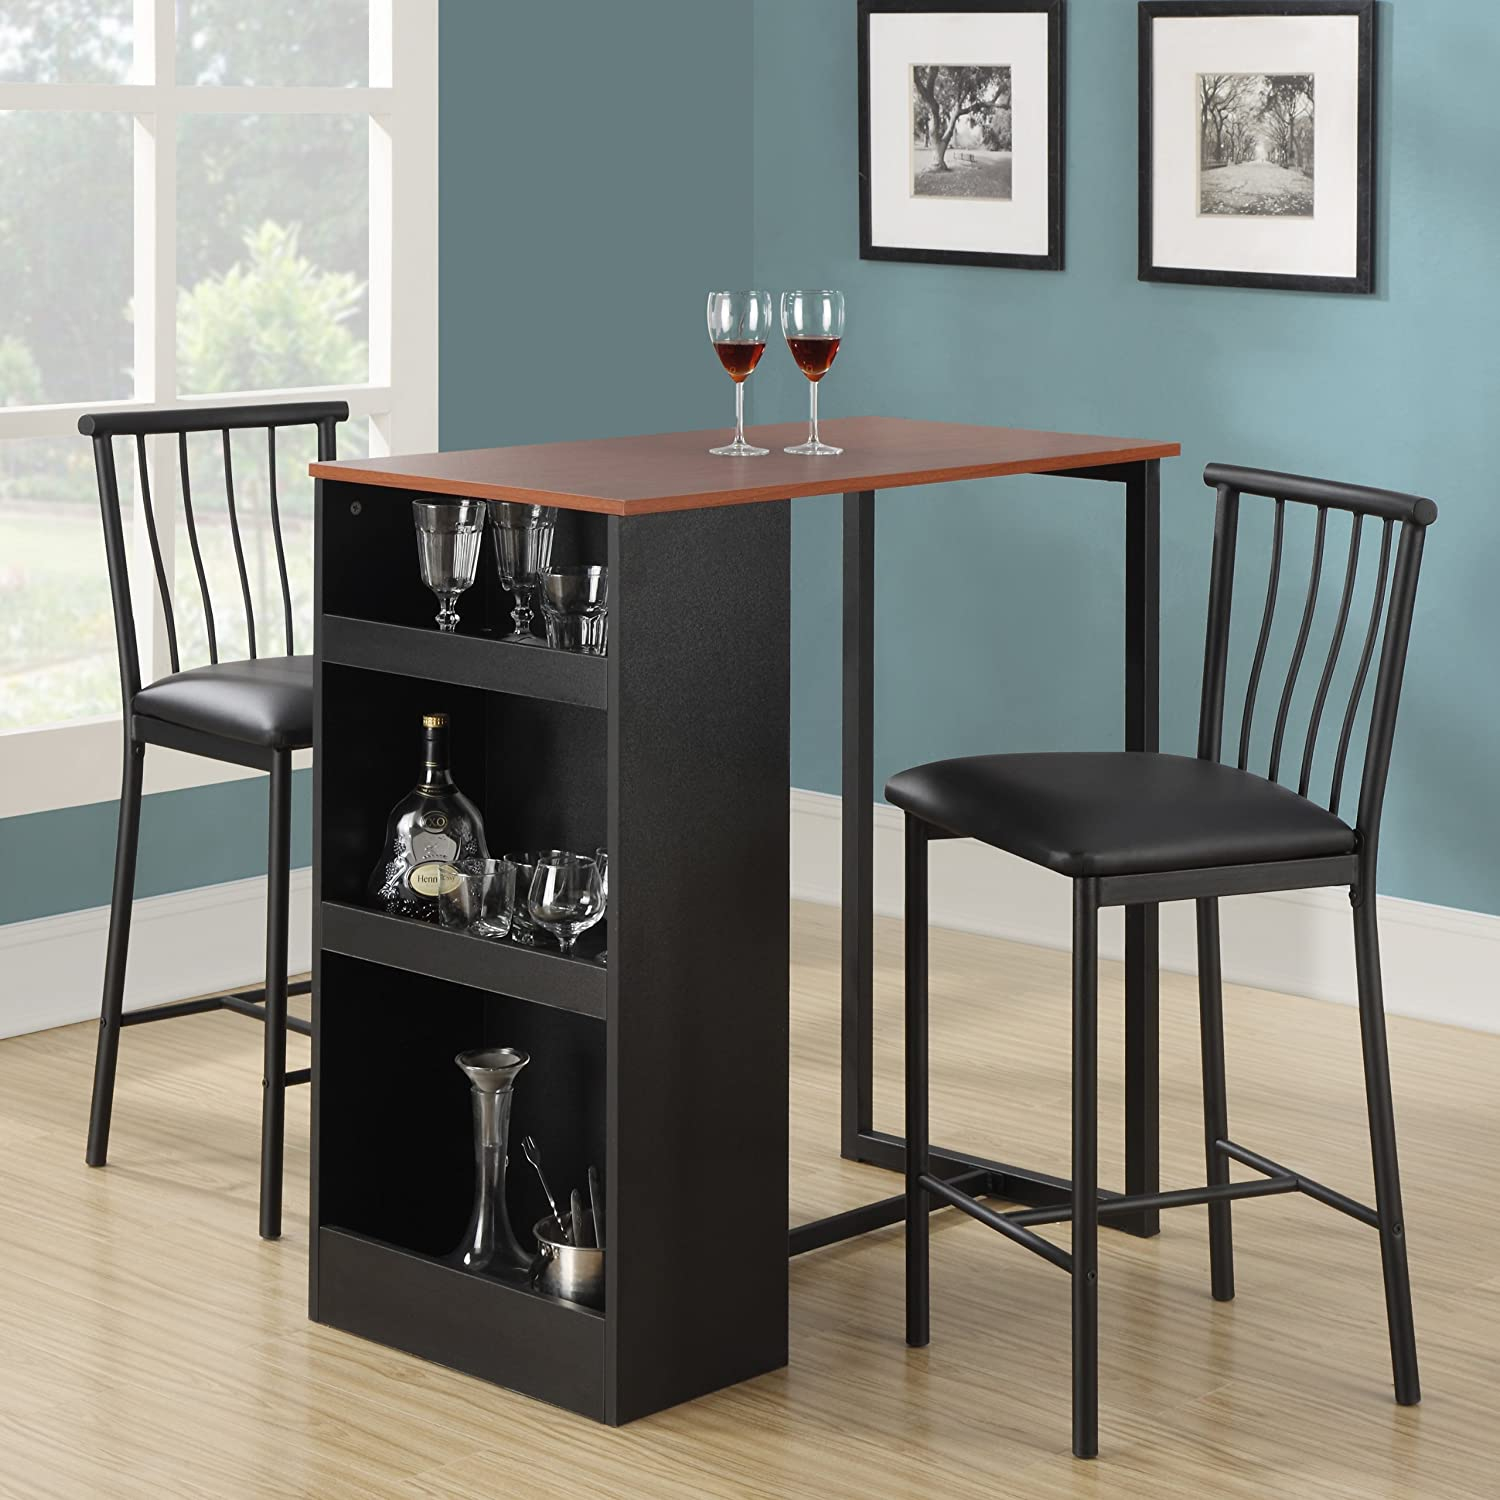 amazoncom dorel living 3piece counter height bar set table u0026 chair sets - Counter Height Table And Chairs